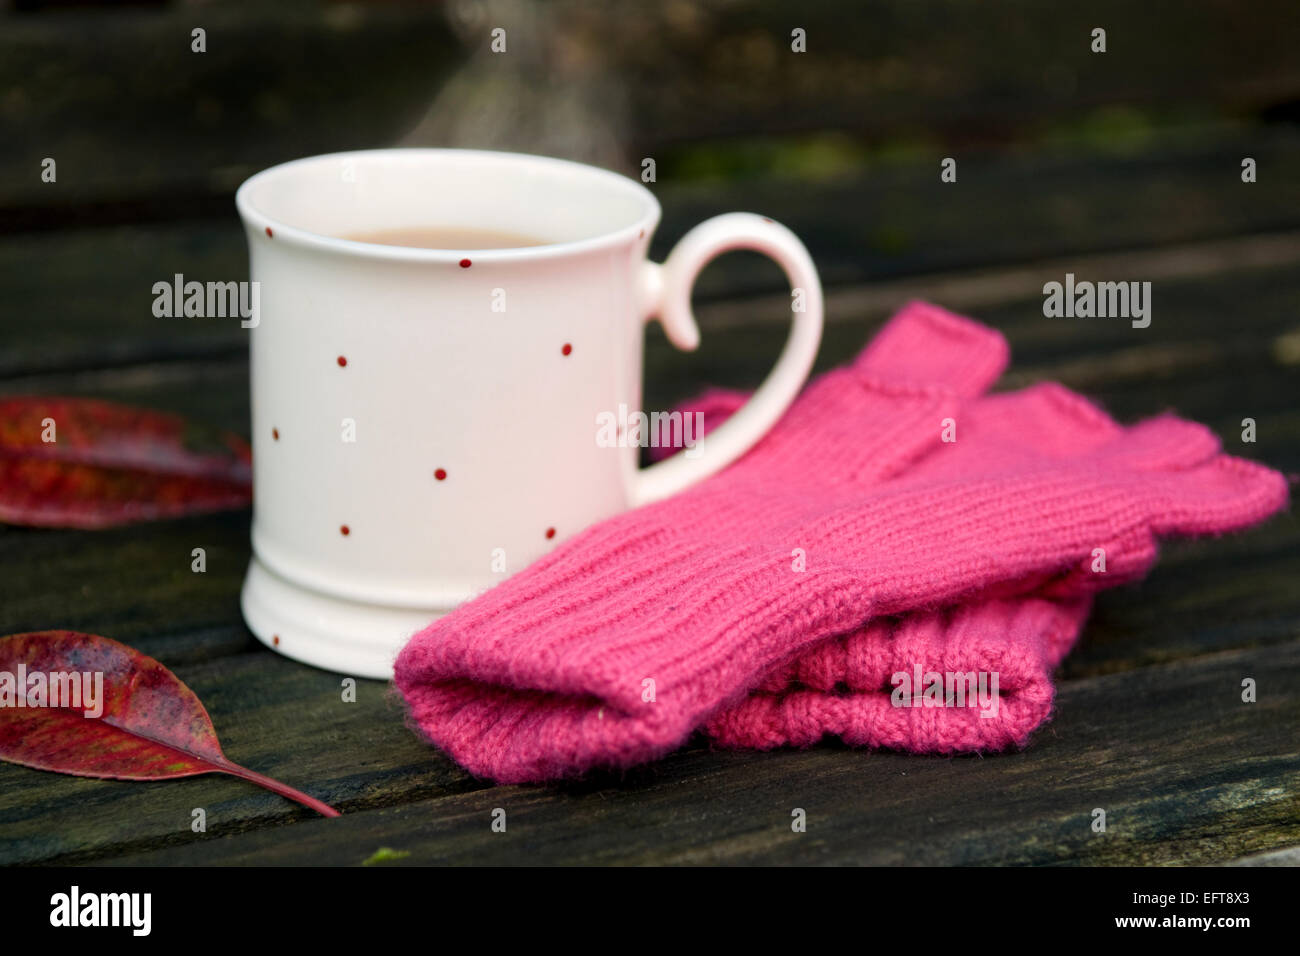 Steaming cup of tea with knitted gloves and autumn leaves on bench in garden on a cold winters day - Stock Image